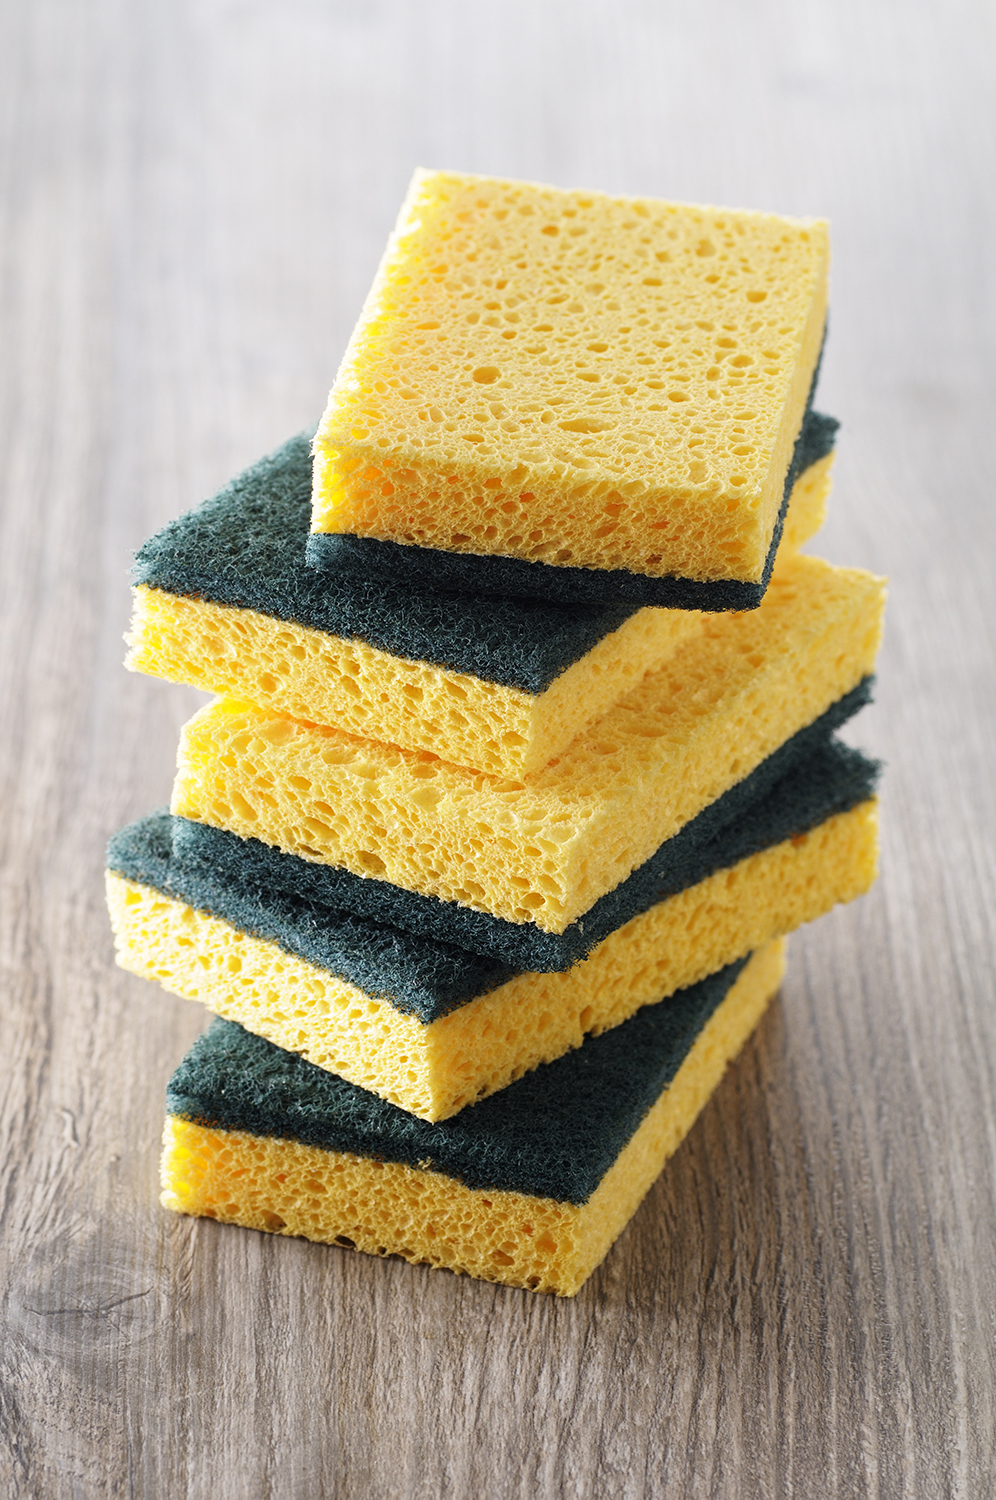 You Should Throw Away Your Germy Kitchen Sponge Immediately. Here's